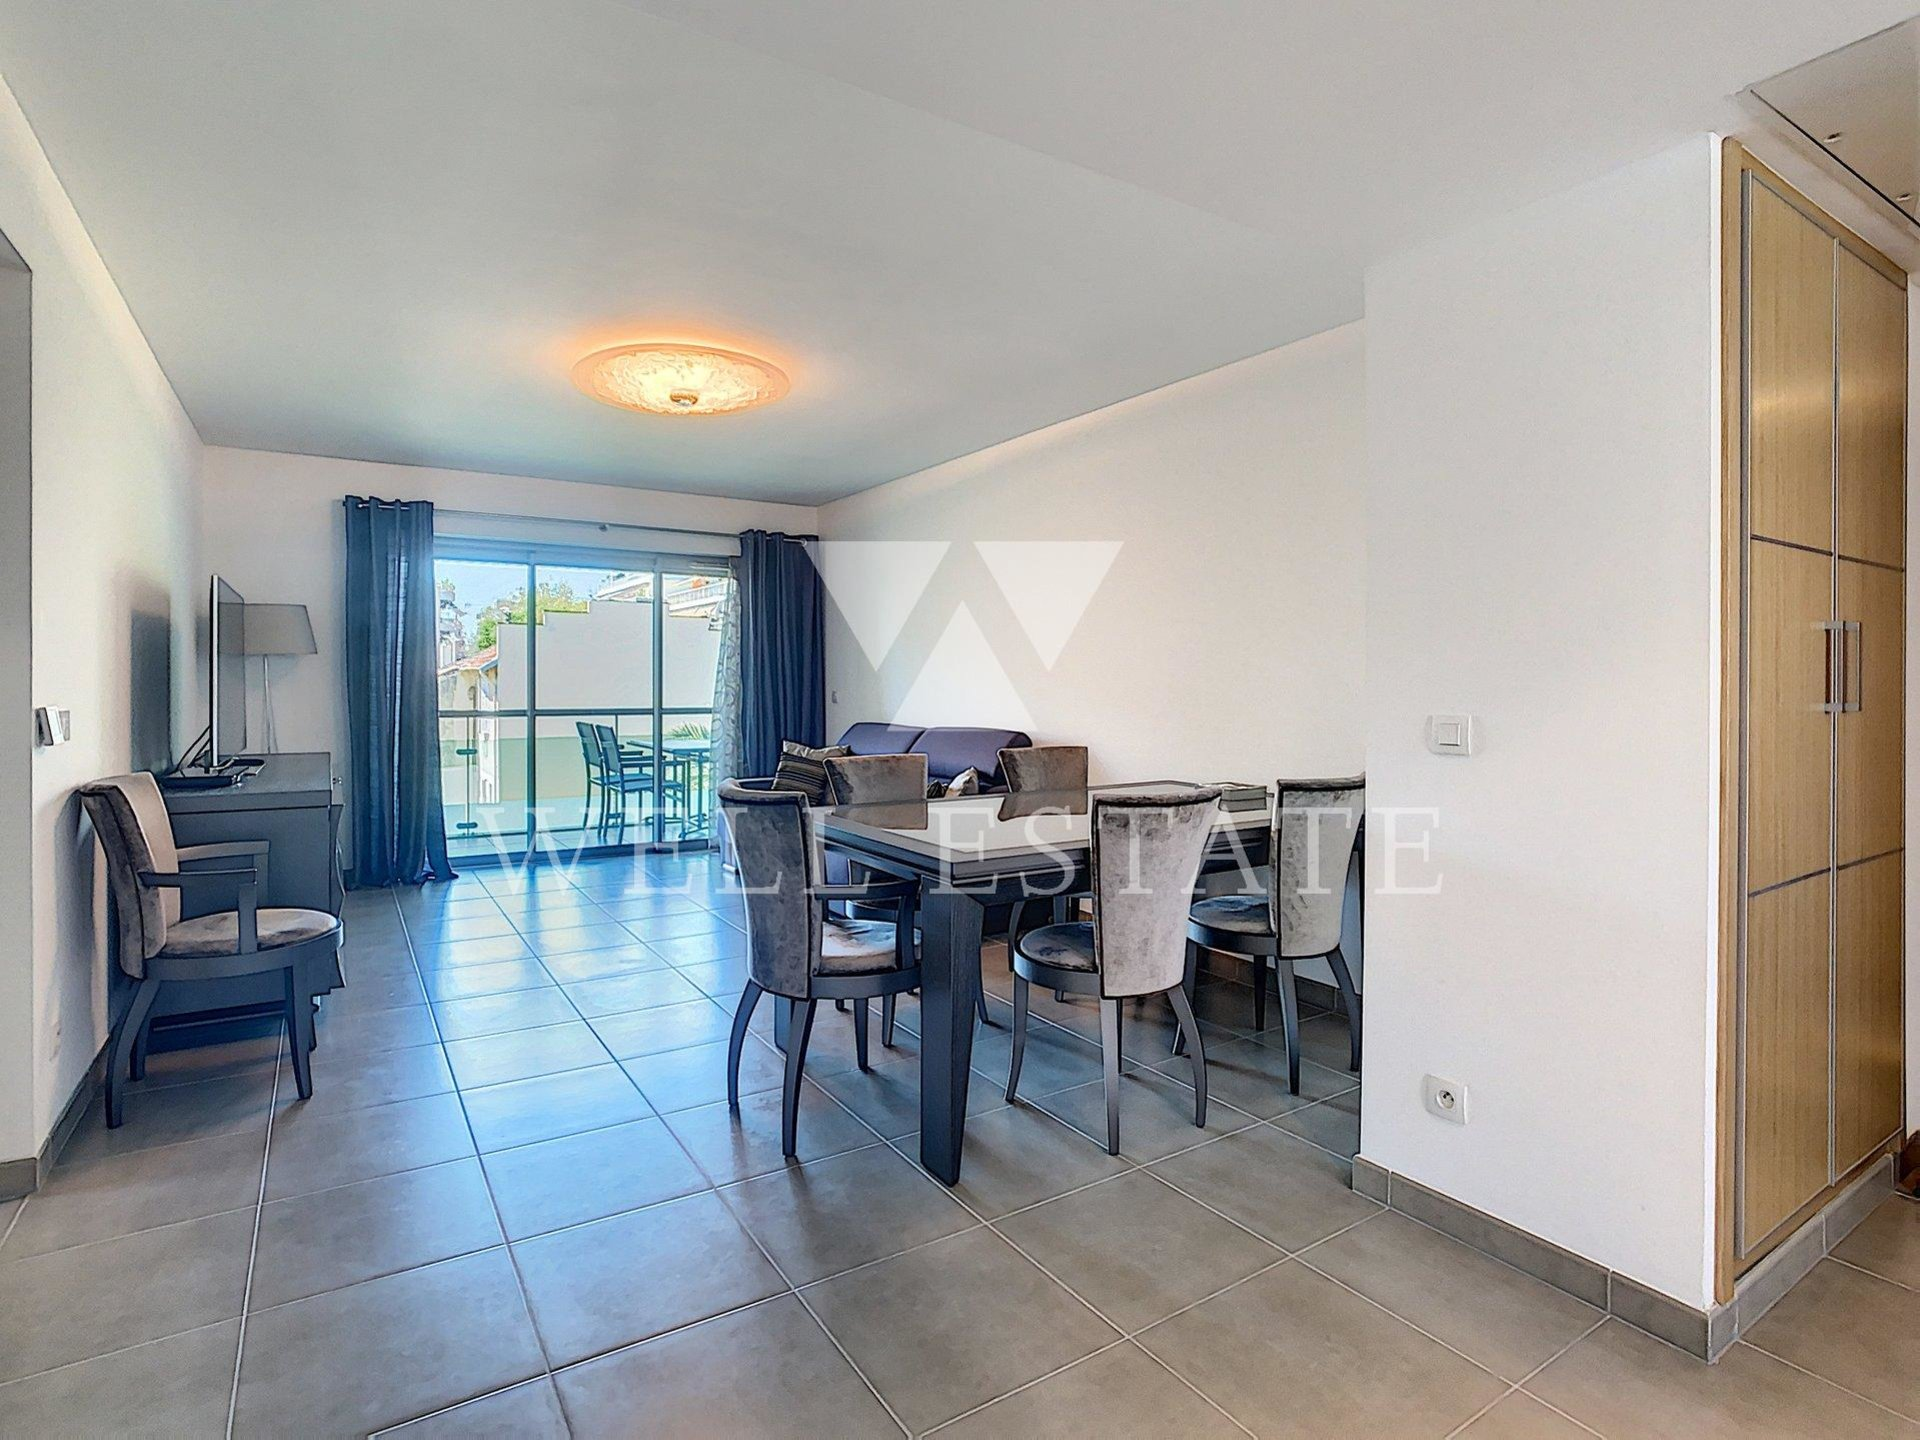 ANTIBES/JUAN LES PINS 2 BEDROOM APARTMENT WITH TERRACE IN A RECENT LUXURY RESIDENCE